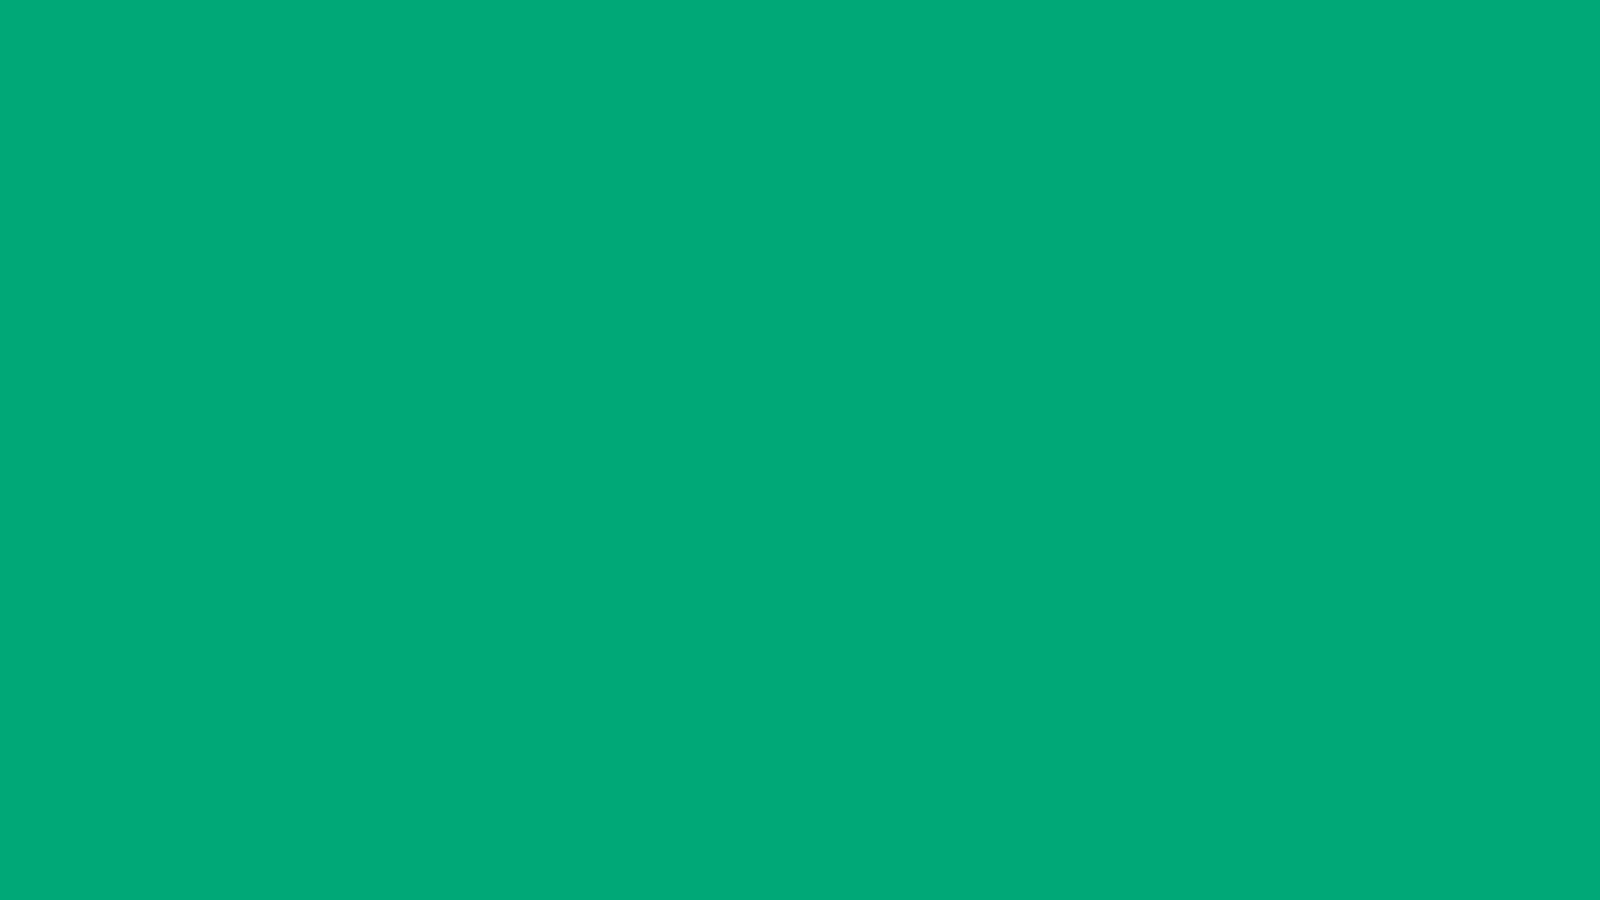 1600x900 Green Munsell Solid Color Background